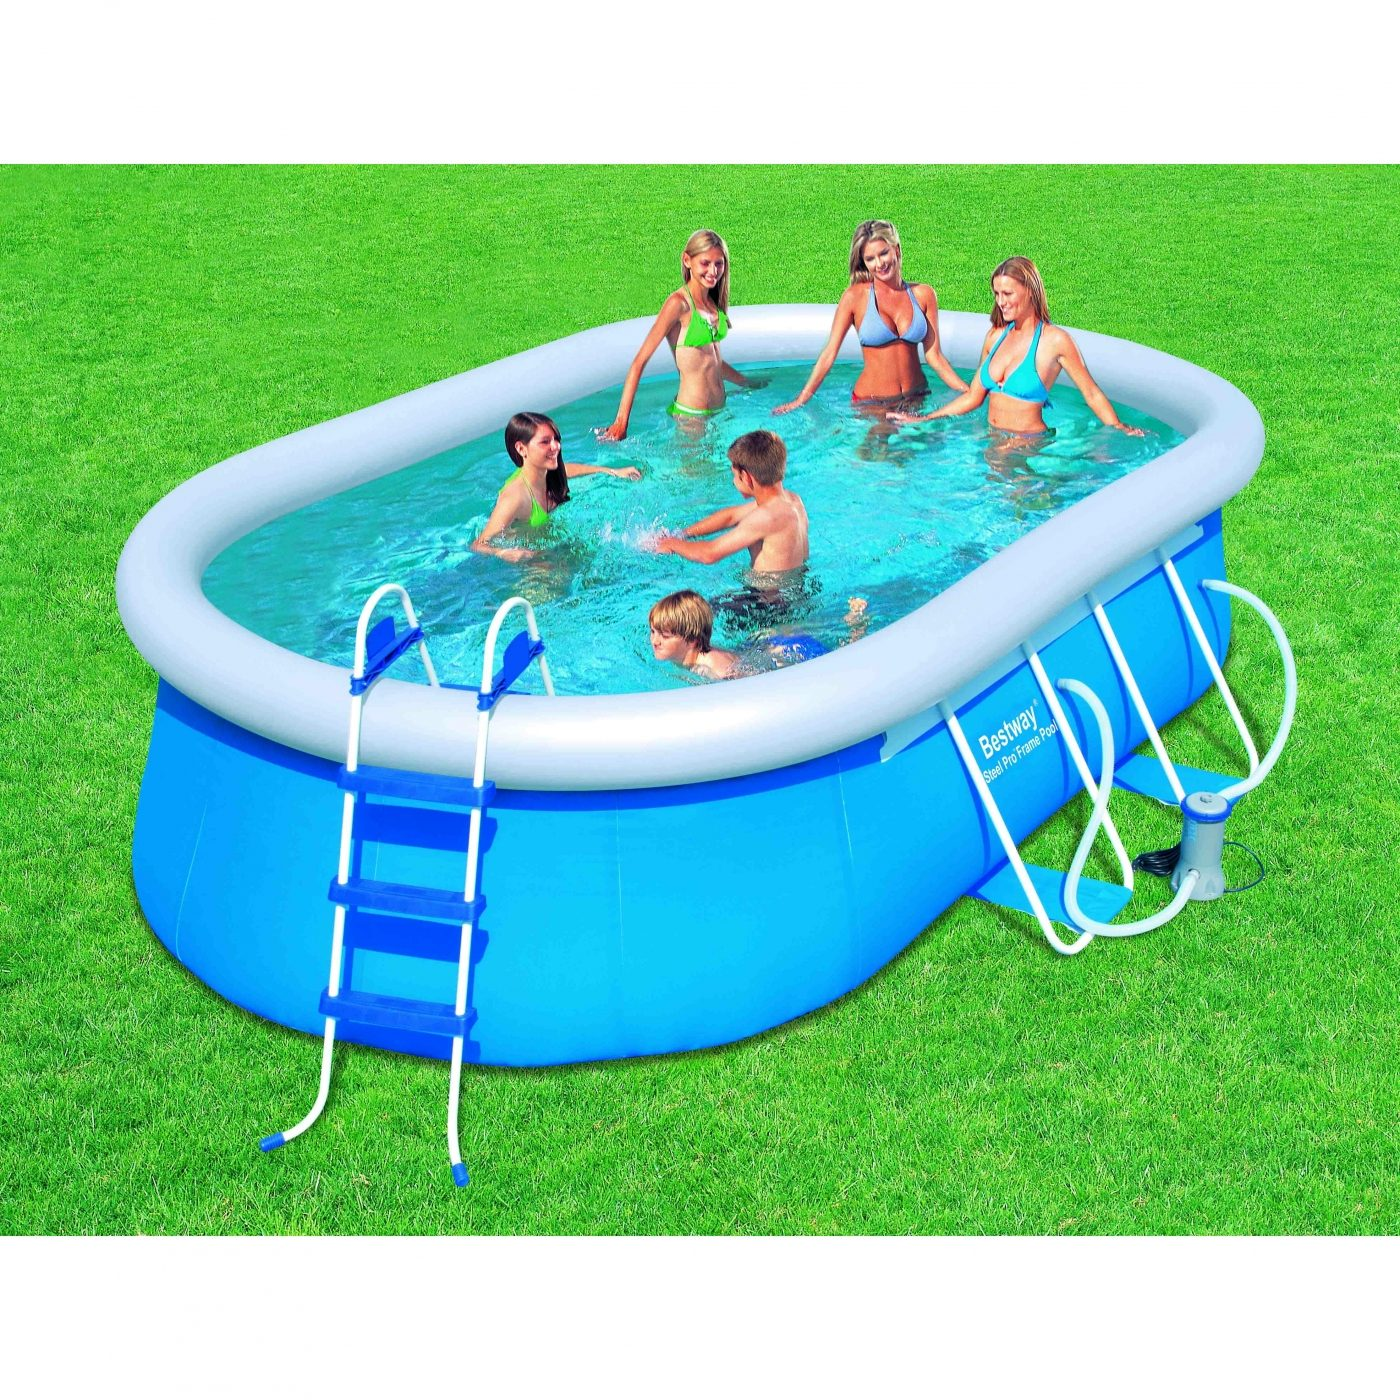 Piscine ovale fast set avec station d 39 puration par 399 95 for Piscine 95